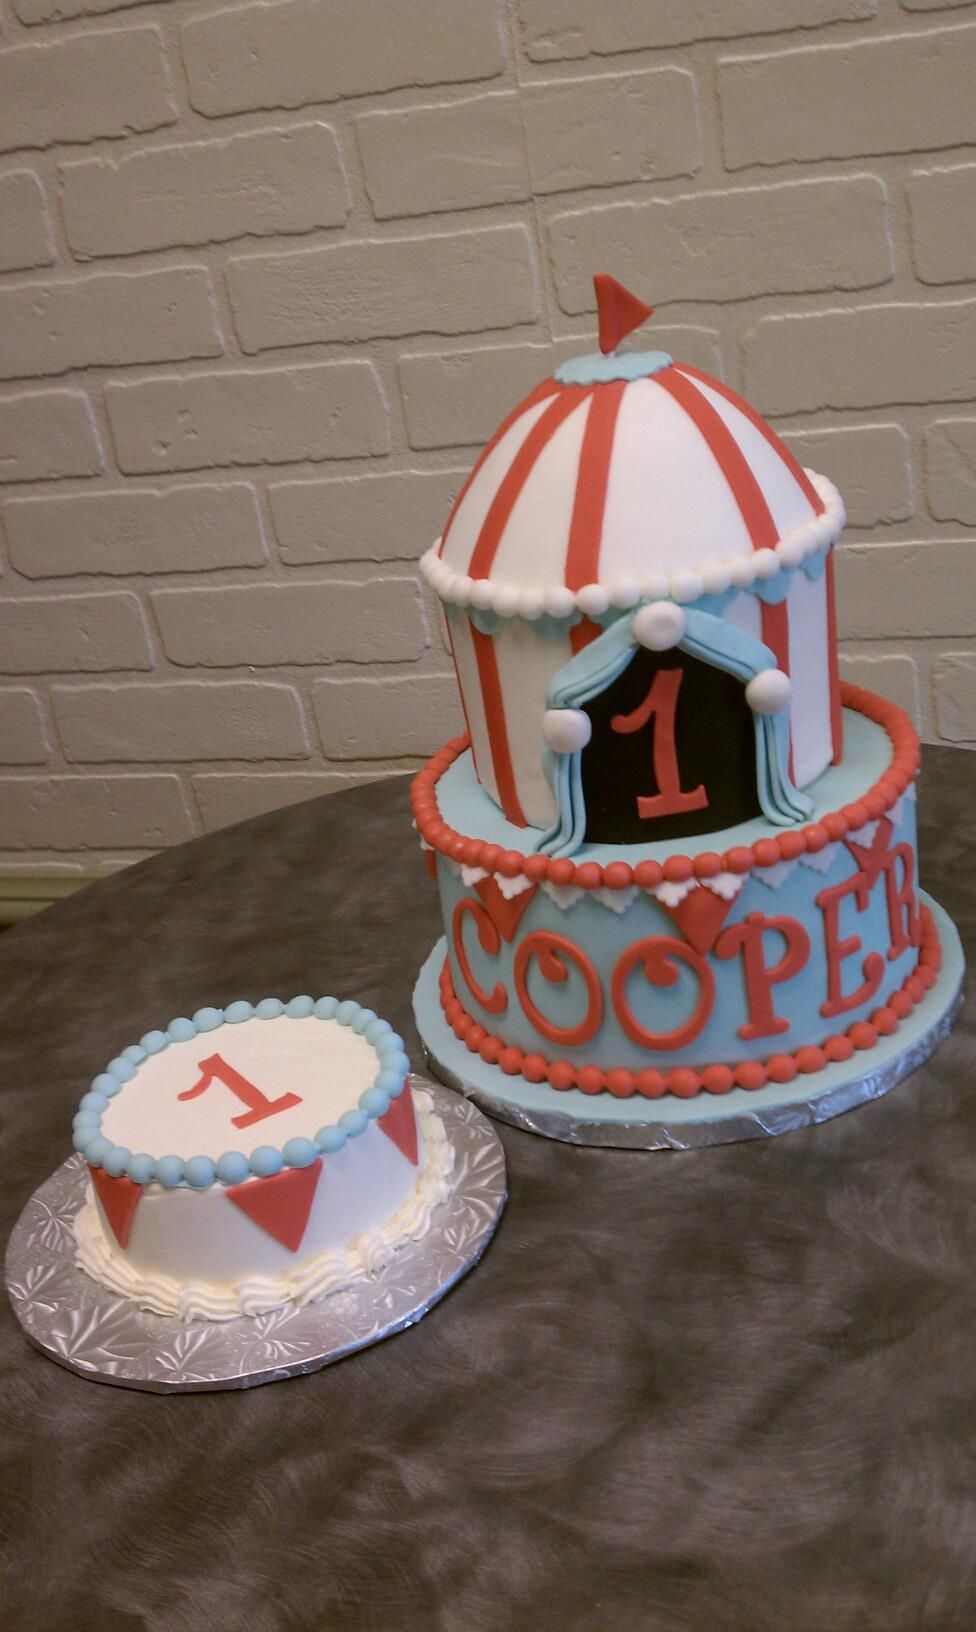 Coopers Birthday Cake Circus Themed Buttercream Bakehouse In Greenville SC